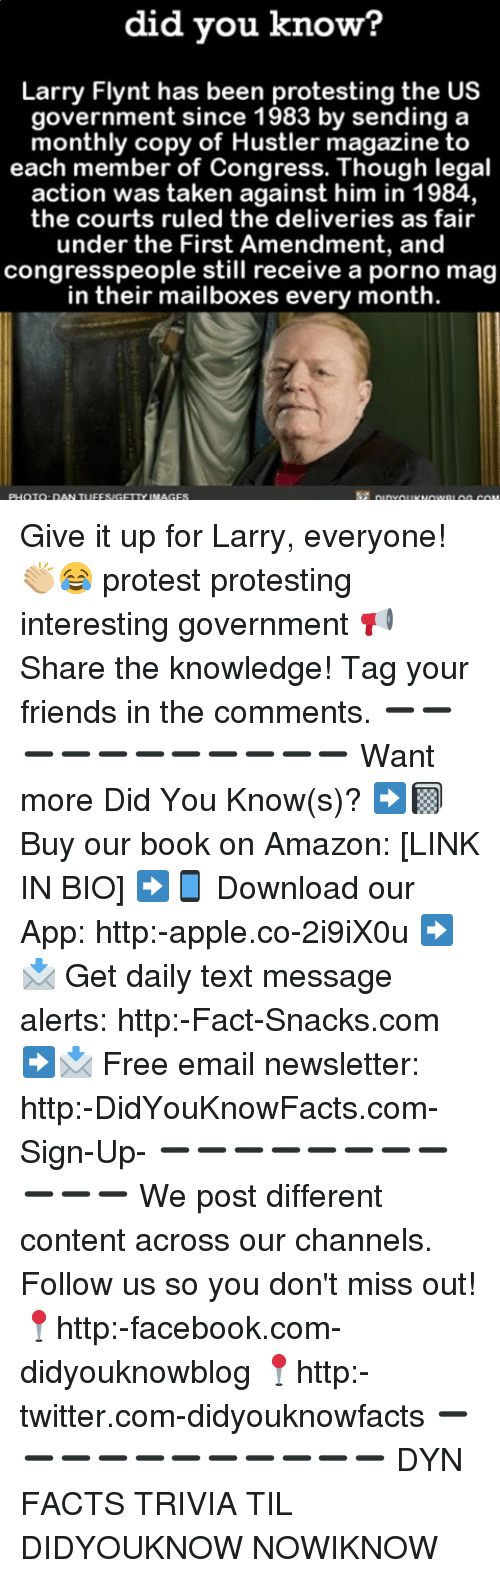 Amazon, Apple, and Facebook: did you know?  Larry Flynt has been protesting the US  government since 1983 by sending a  monthly copy of Hustler magazine to  each member of Congress. Though legal  action was taken against him in 1984,  the courts ruled the deliveries as fair  under the First Amendment, and  congresspeople still receive a porno mag  in their mailboxes every month Give it up for Larry, everyone! 👏🏼😂 protest protesting interesting government 📢 Share the knowledge! Tag your friends in the comments. ➖➖➖➖➖➖➖➖➖➖➖ Want more Did You Know(s)? ➡📓 Buy our book on Amazon: [LINK IN BIO] ➡📱 Download our App: http:-apple.co-2i9iX0u ➡📩 Get daily text message alerts: http:-Fact-Snacks.com ➡📩 Free email newsletter: http:-DidYouKnowFacts.com-Sign-Up- ➖➖➖➖➖➖➖➖➖➖➖ We post different content across our channels. Follow us so you don't miss out! 📍http:-facebook.com-didyouknowblog 📍http:-twitter.com-didyouknowfacts ➖➖➖➖➖➖➖➖➖➖➖ DYN FACTS TRIVIA TIL DIDYOUKNOW NOWIKNOW